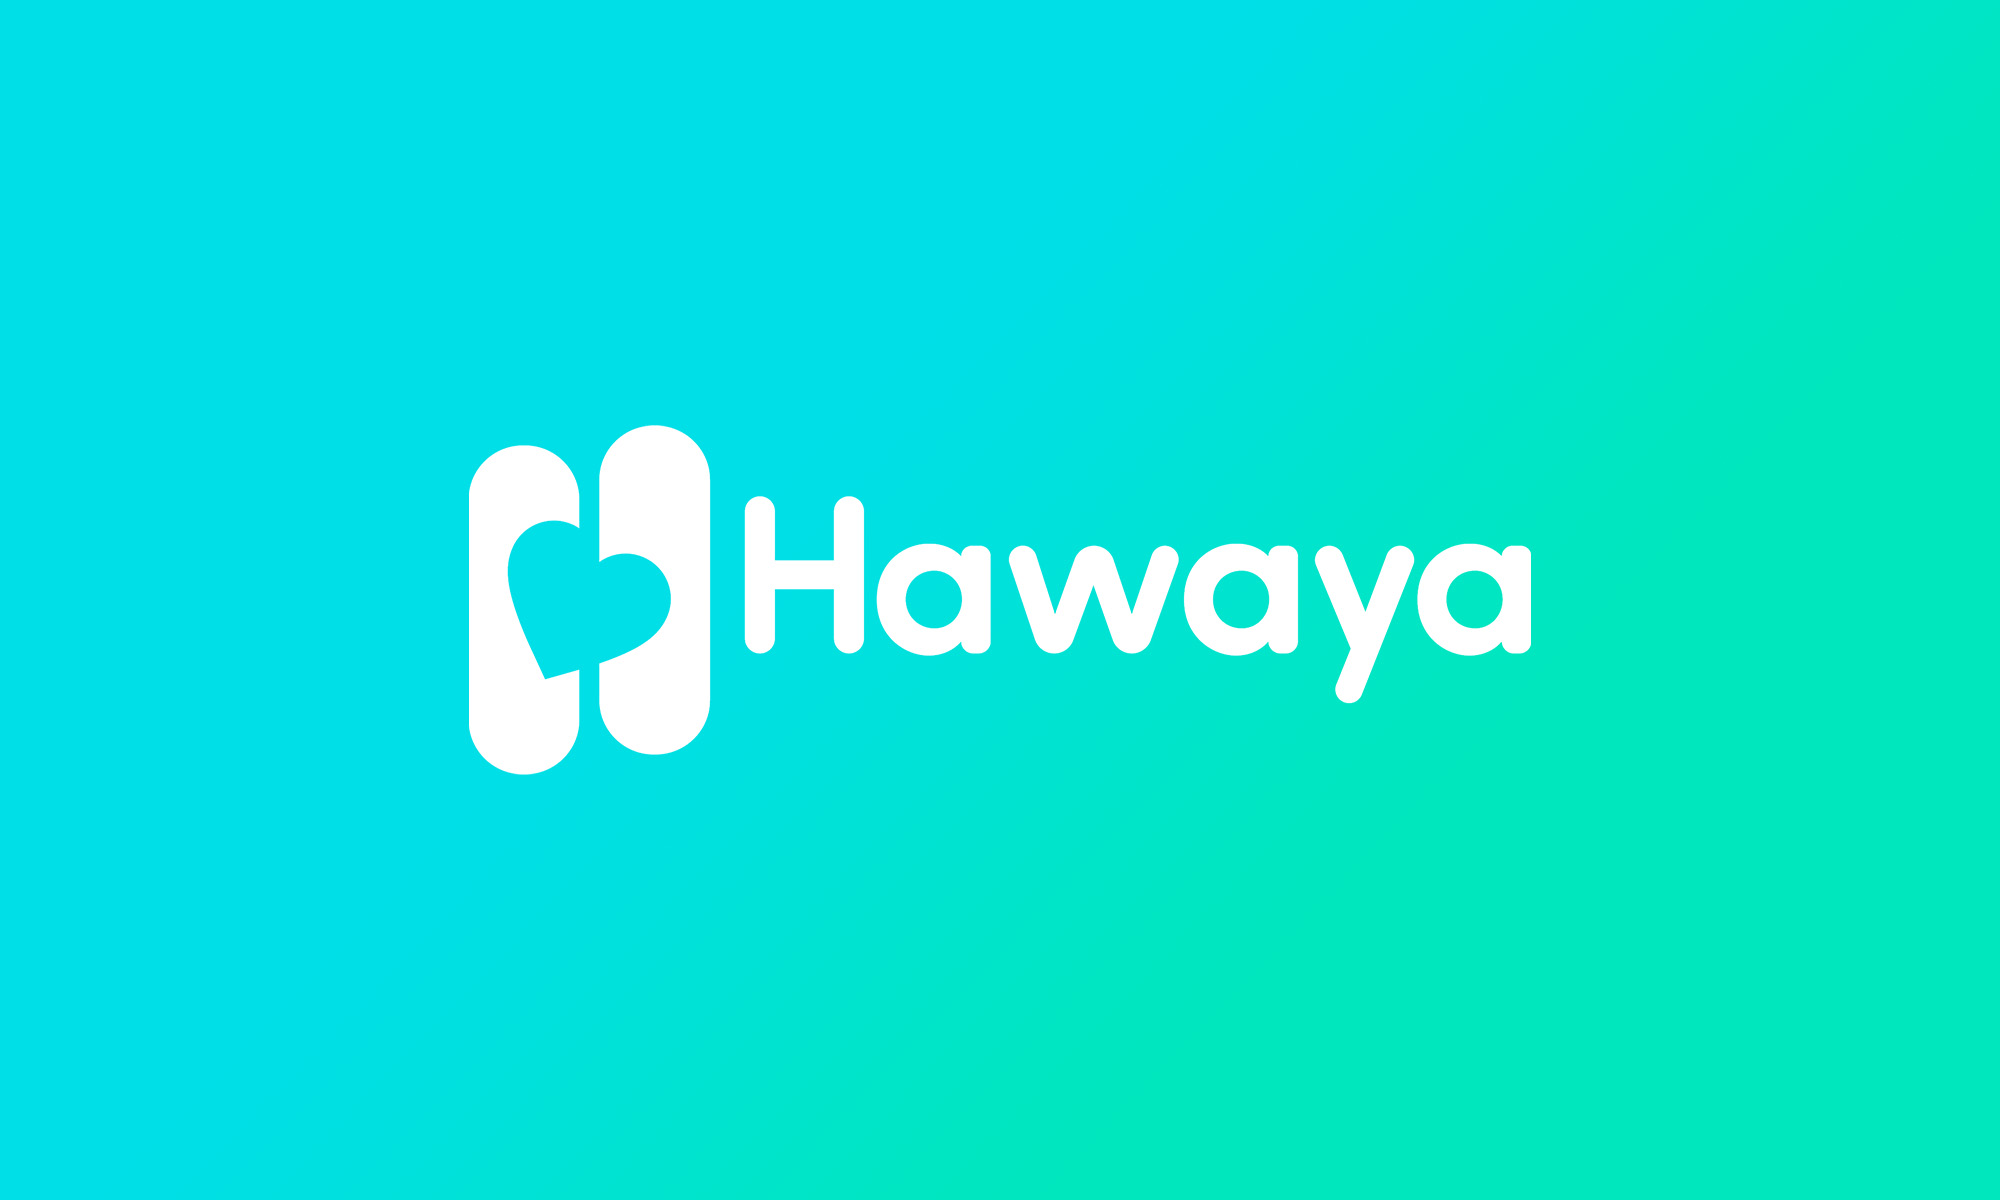 egyptian matchmaking app hawaya lets users connect based on lifestyle choices